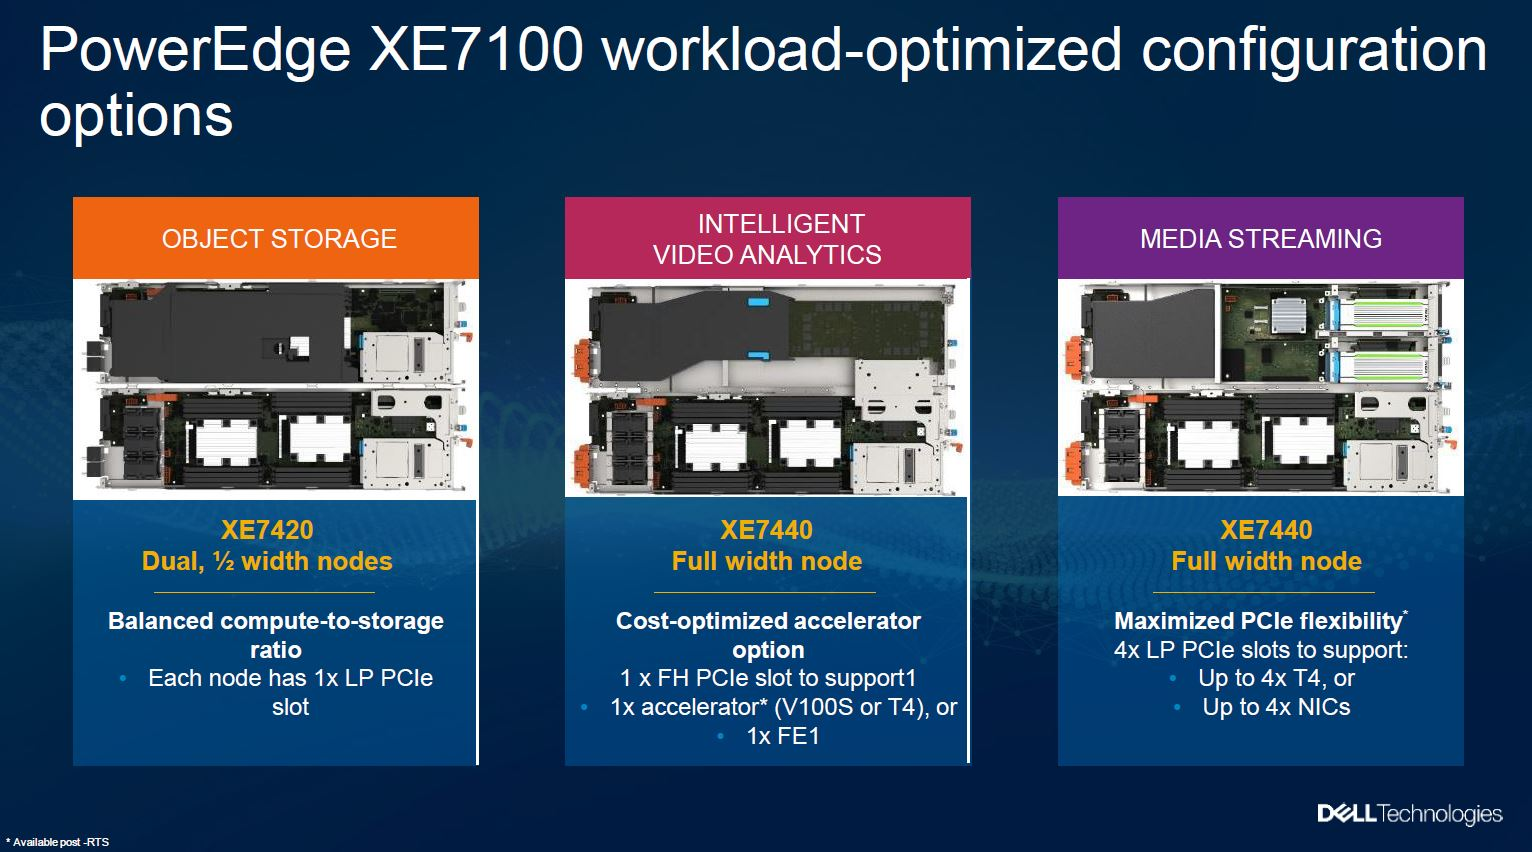 Dell EMC XE7100 Announcement Processor Configurations